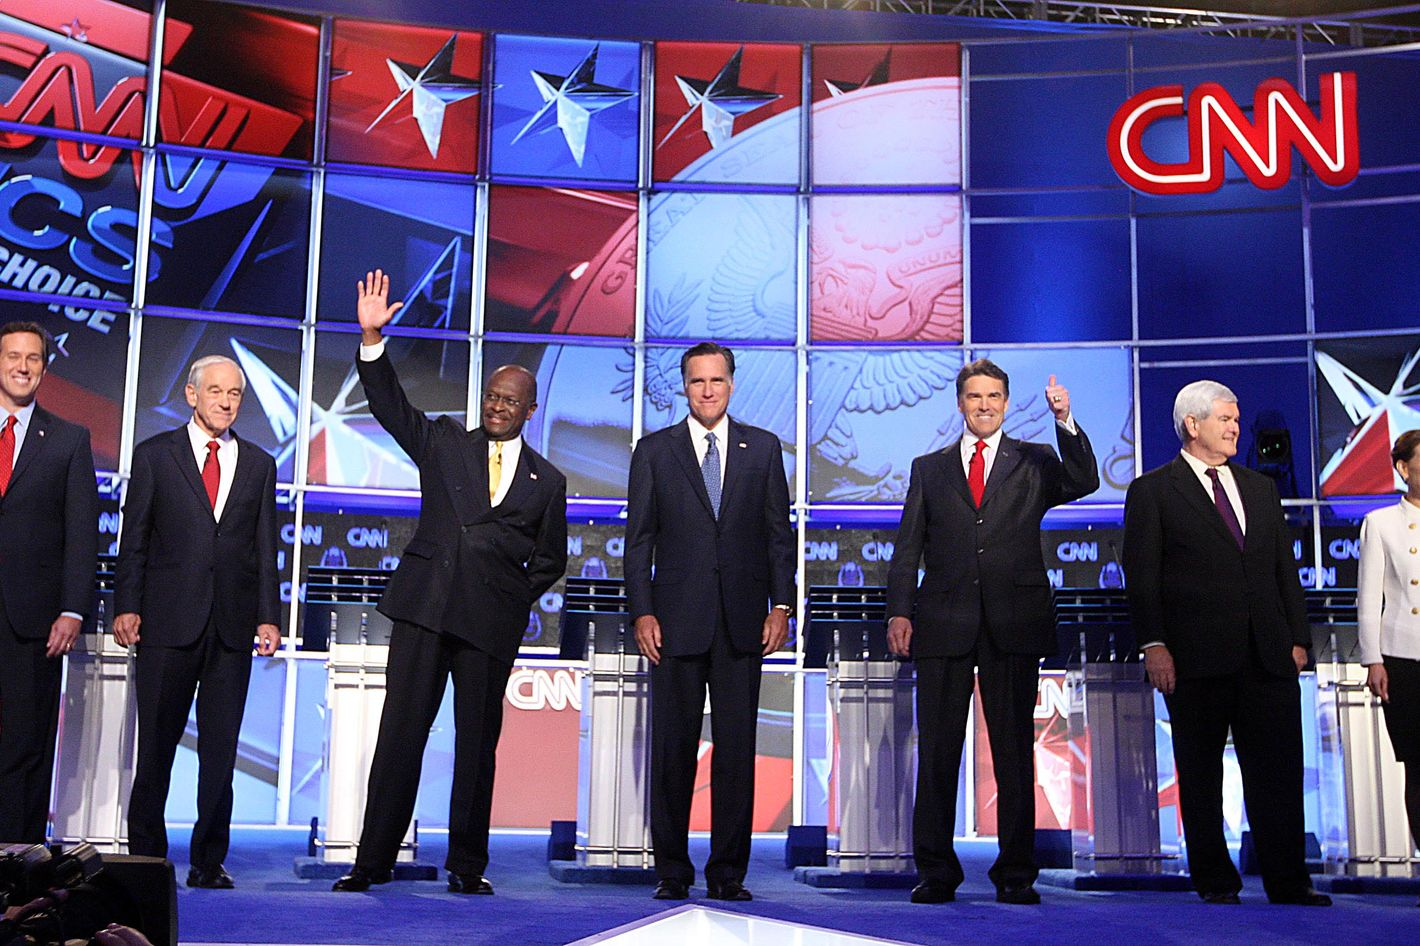 (L-R) U.S. Sen. Rick Santorum (R-PA), U.S. Rep. Ron Paul (R-TX), former CEO of Godfather's Pizza Herman Cain, former Massachusetts Gov. Mitt Romney, Texas Gov. Rick Perry, Former Speaker of the House Newt Gingrich and U.S. Rep. Michele Bachmann (R-MN)  say the Pledge of Alligence during the Republican Presidential debate hosted by CNN and The Western Republican Leadership Conference on October 18, 2011 at the The Venetian Resort Hotel Casino in Las Vegas, Nevada.  AFP PHOTO / John GURZINSKI (Photo credit should read JOHN GURZINSKI/AFP/Getty Images)